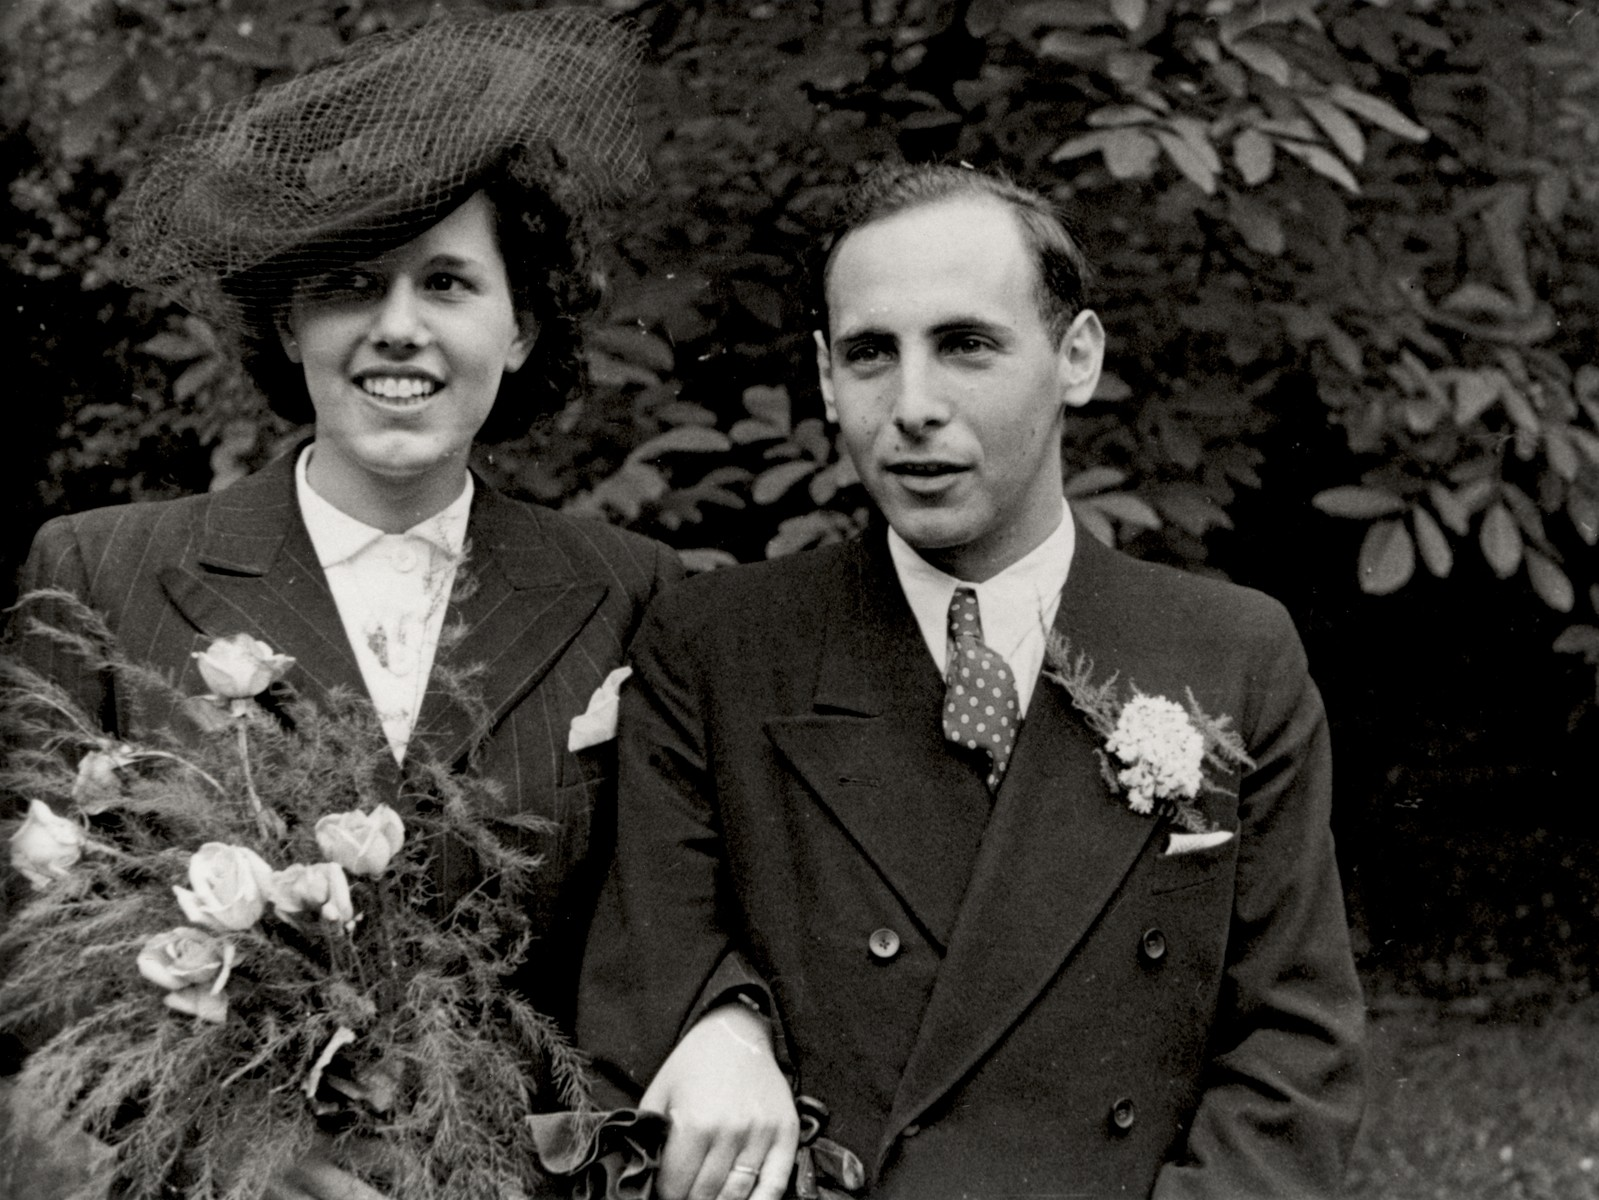 Portrait of Lore Gotthelf and Erwin Jacobowitz outside the Buckland Crescent synagogue in London, after their wedding.